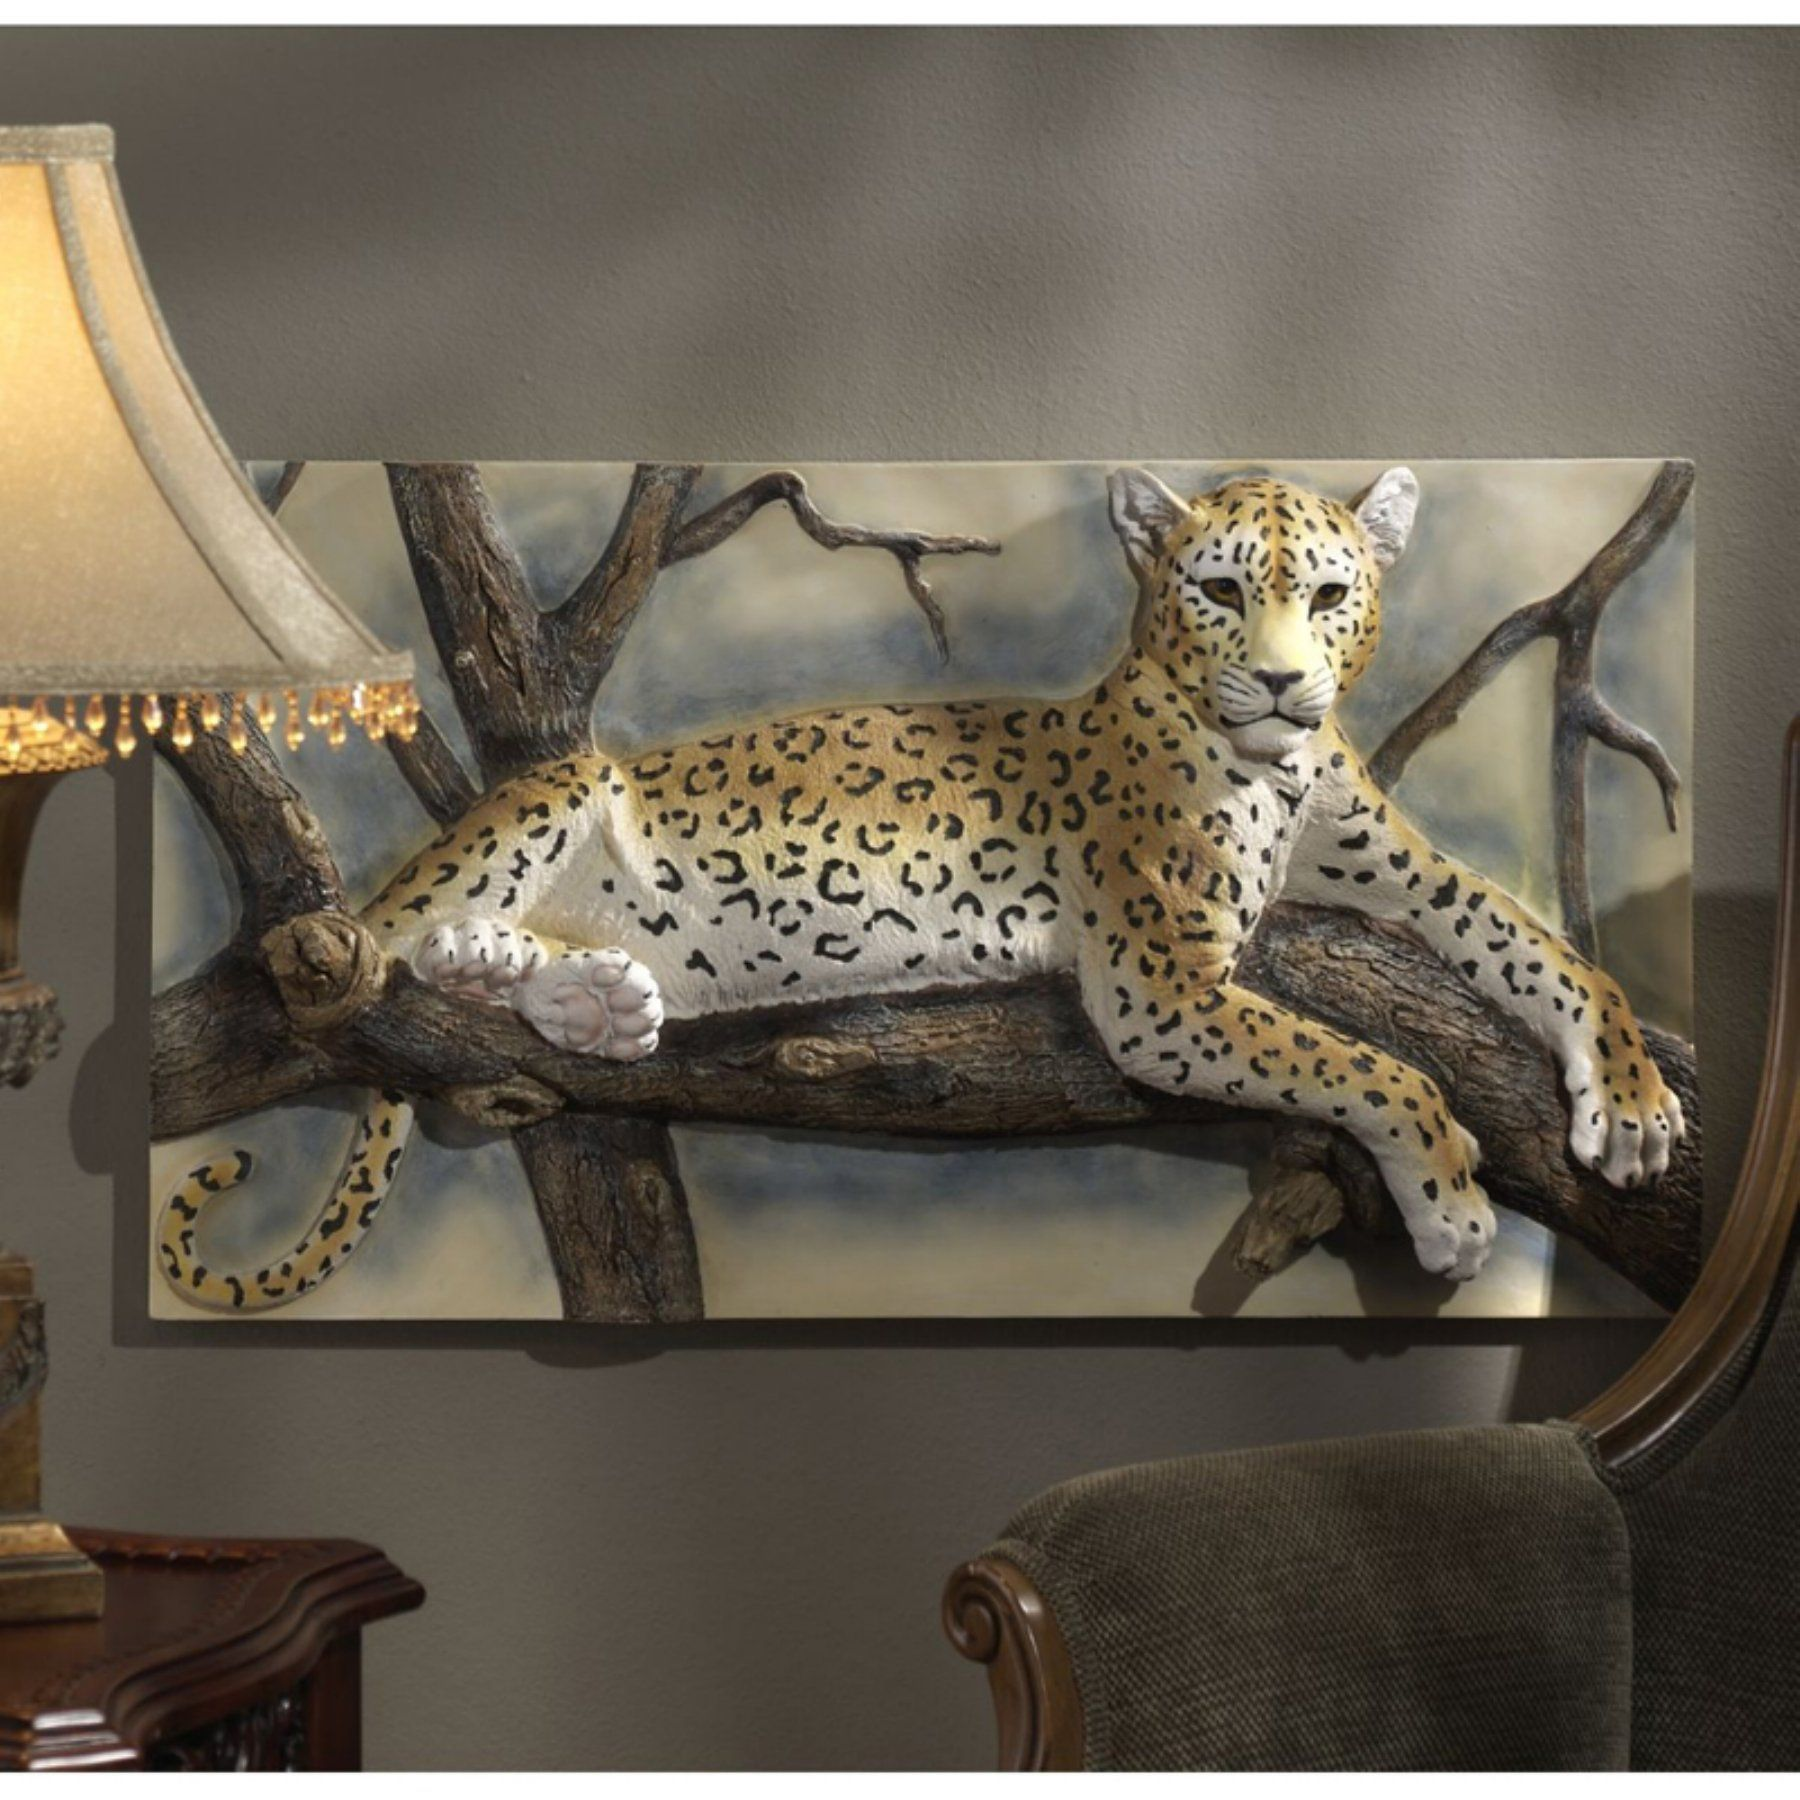 Design Toscano The Leopards Lair Sculptural Wall Frieze - NG33377